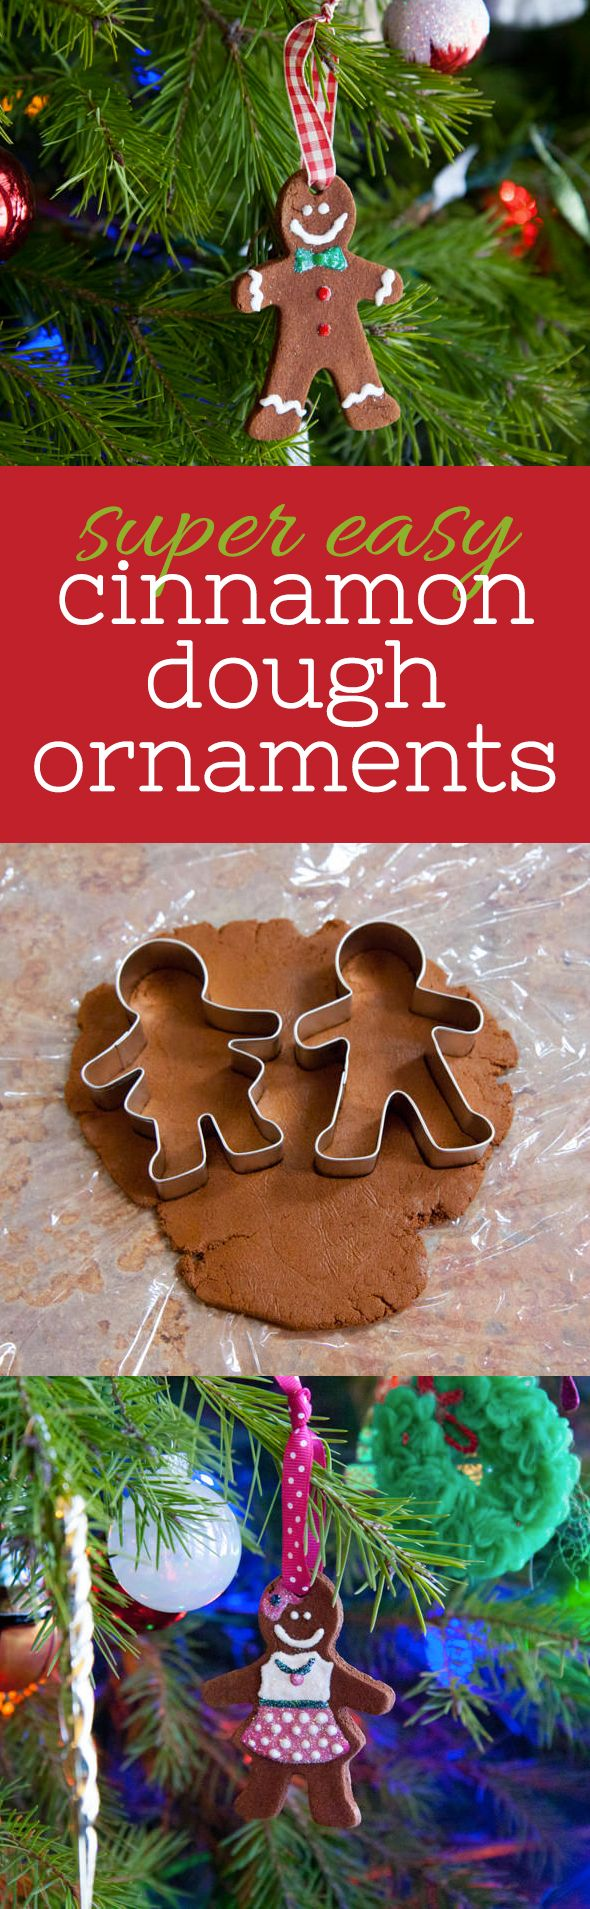 This step-by-step tutorial how super easy it is to make cinnamon ornaments for your Christmas tree at home. They smell amazing and look beautiful!